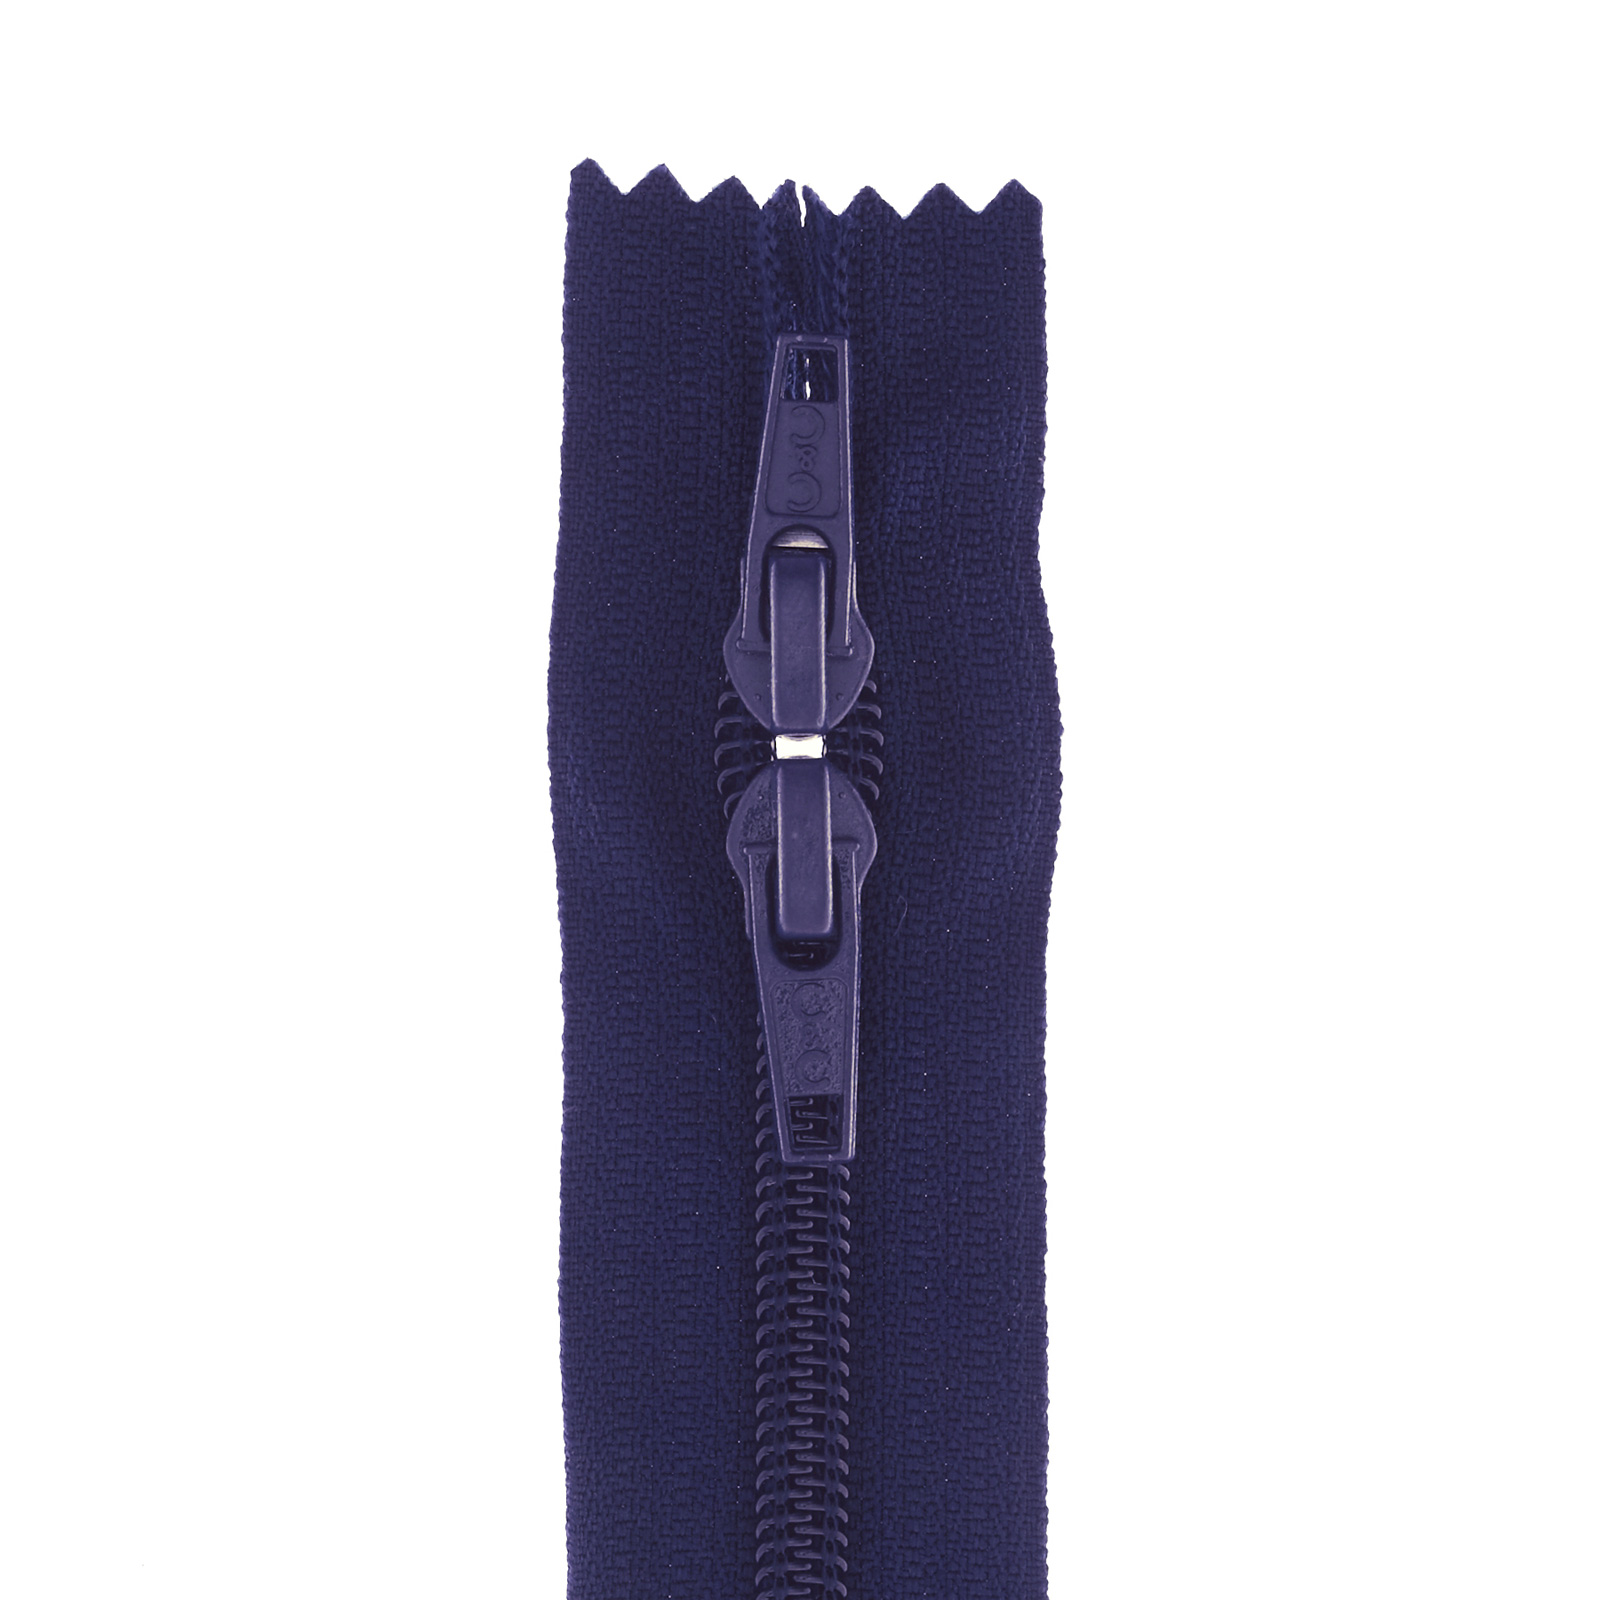 Coats & Clark Purse Zipper 22'' Navy